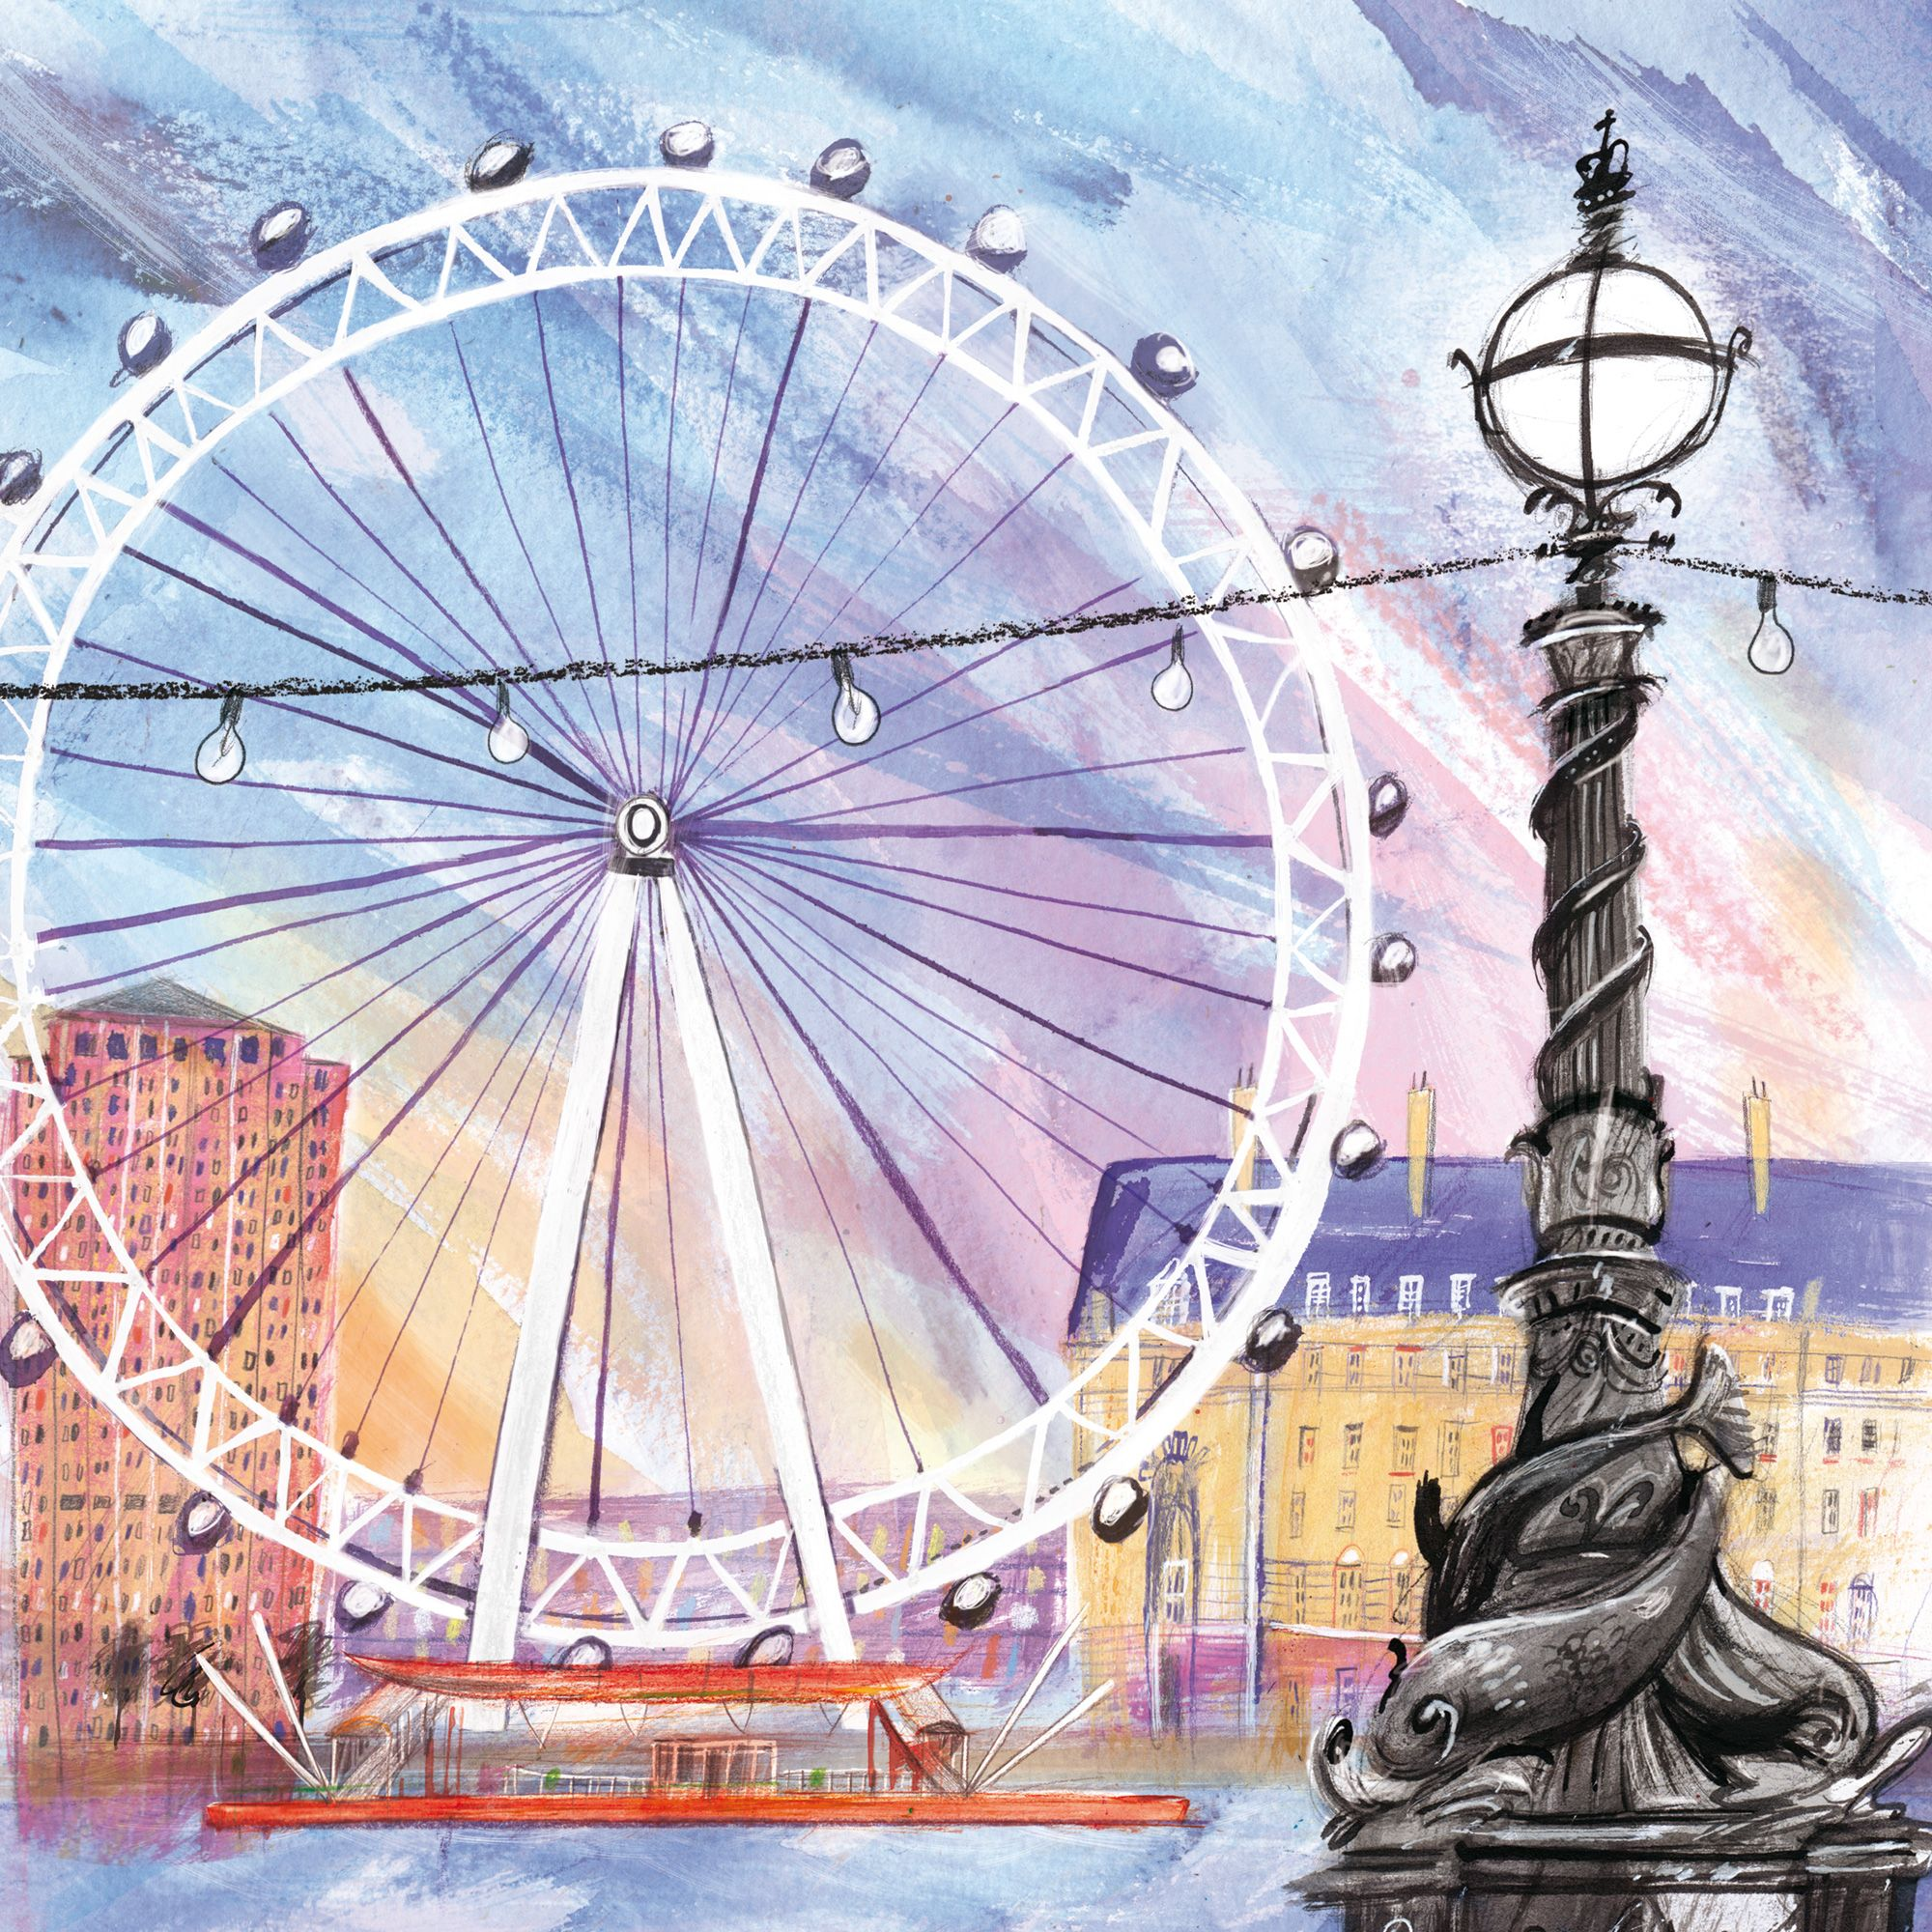 2000x2000 London Eye (Lhc22) London Town And City Canvas By Laura Hughes